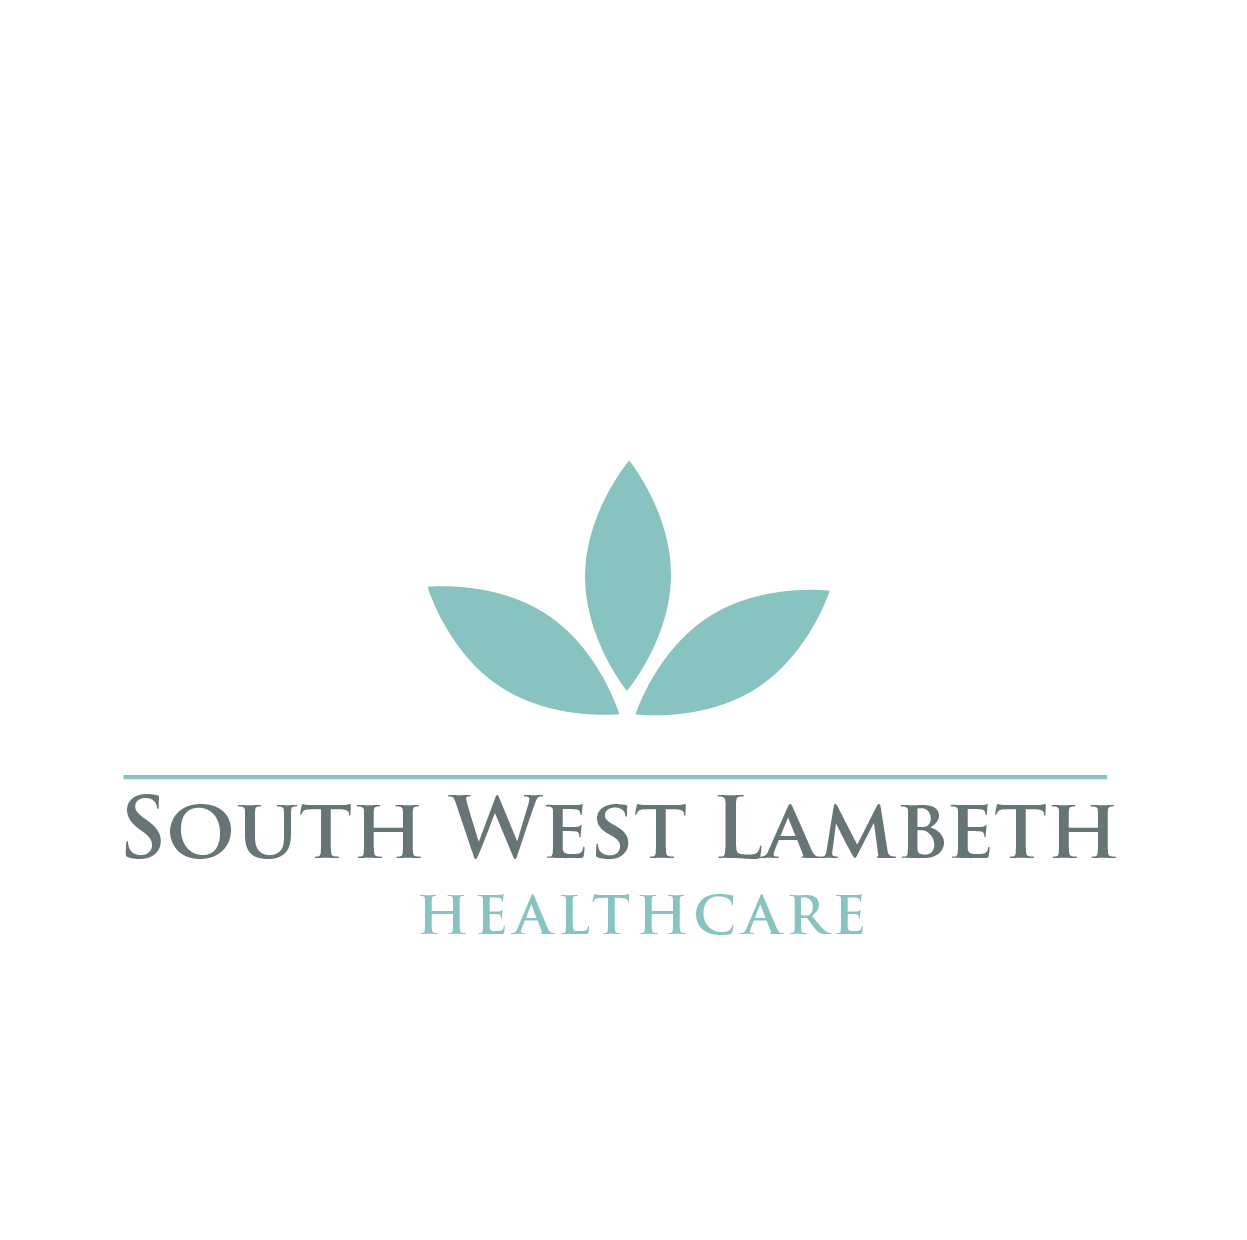 serious conservative healthcare logo design for south